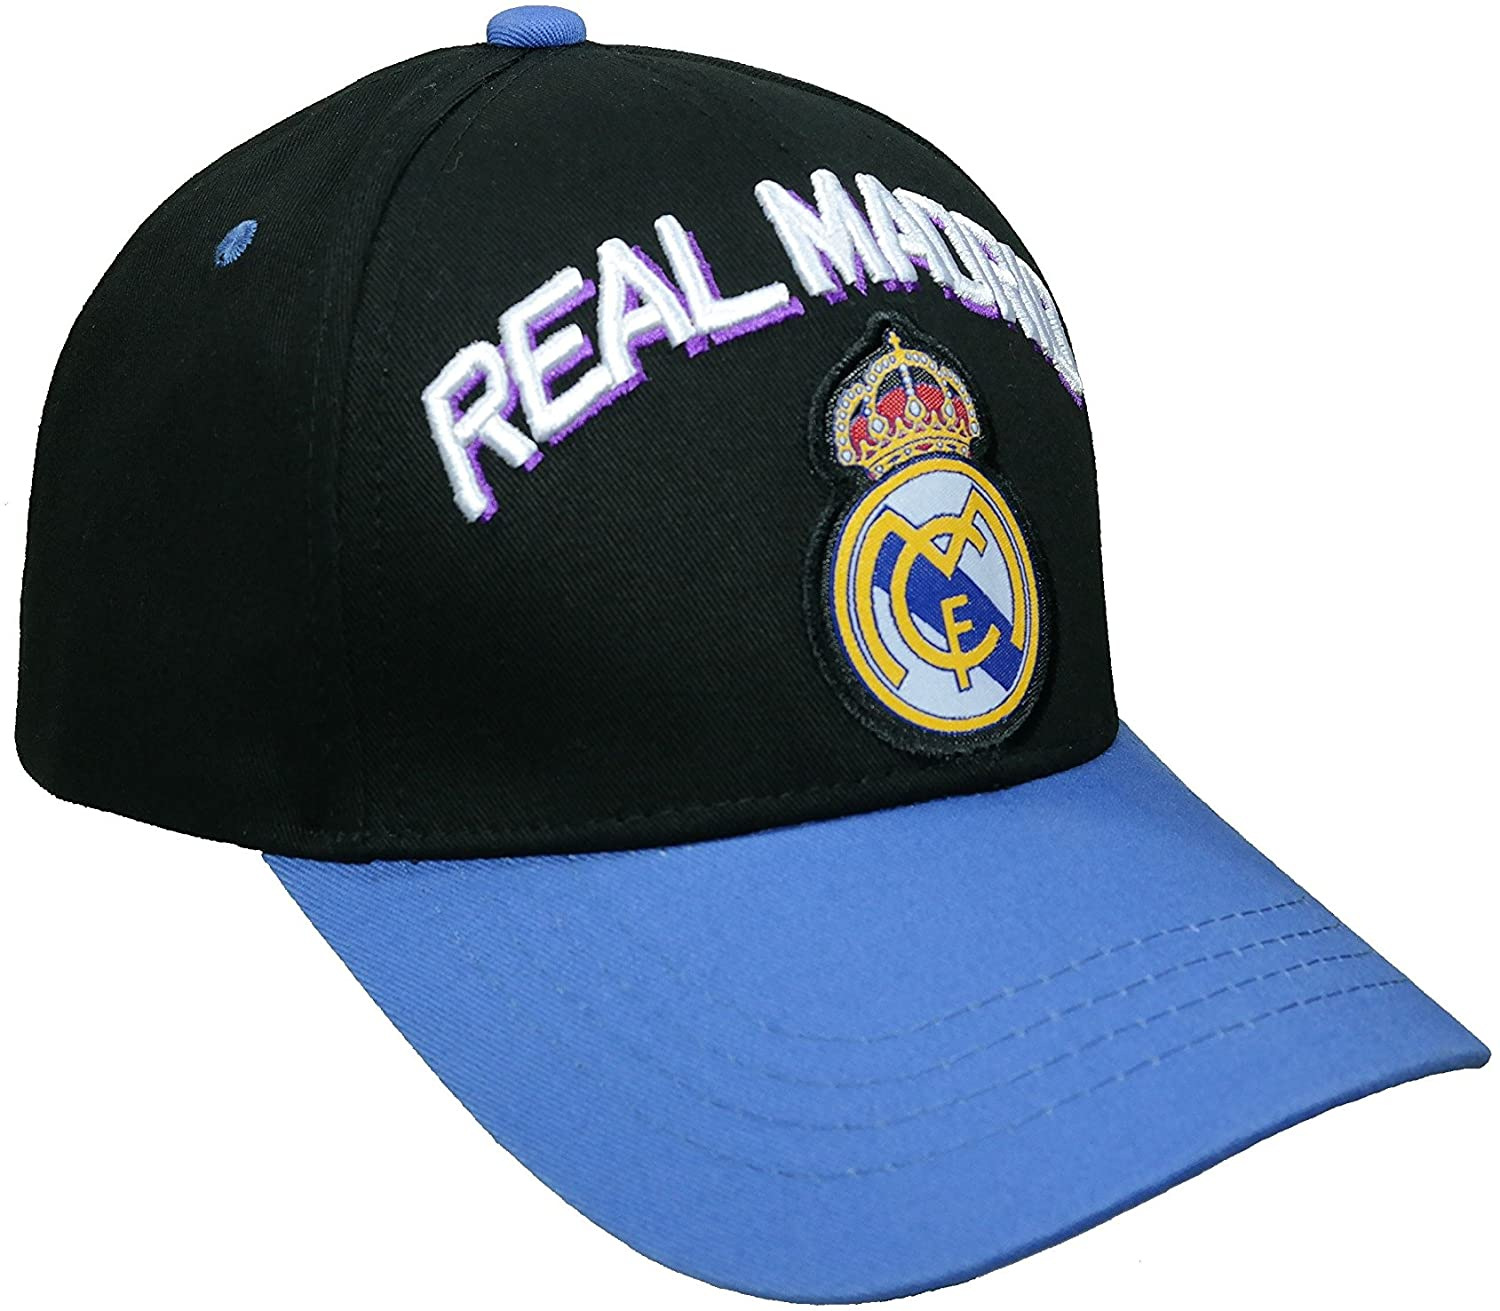 Real Madrid Authentic Official Licensed Product Soccer Cap - 01-4